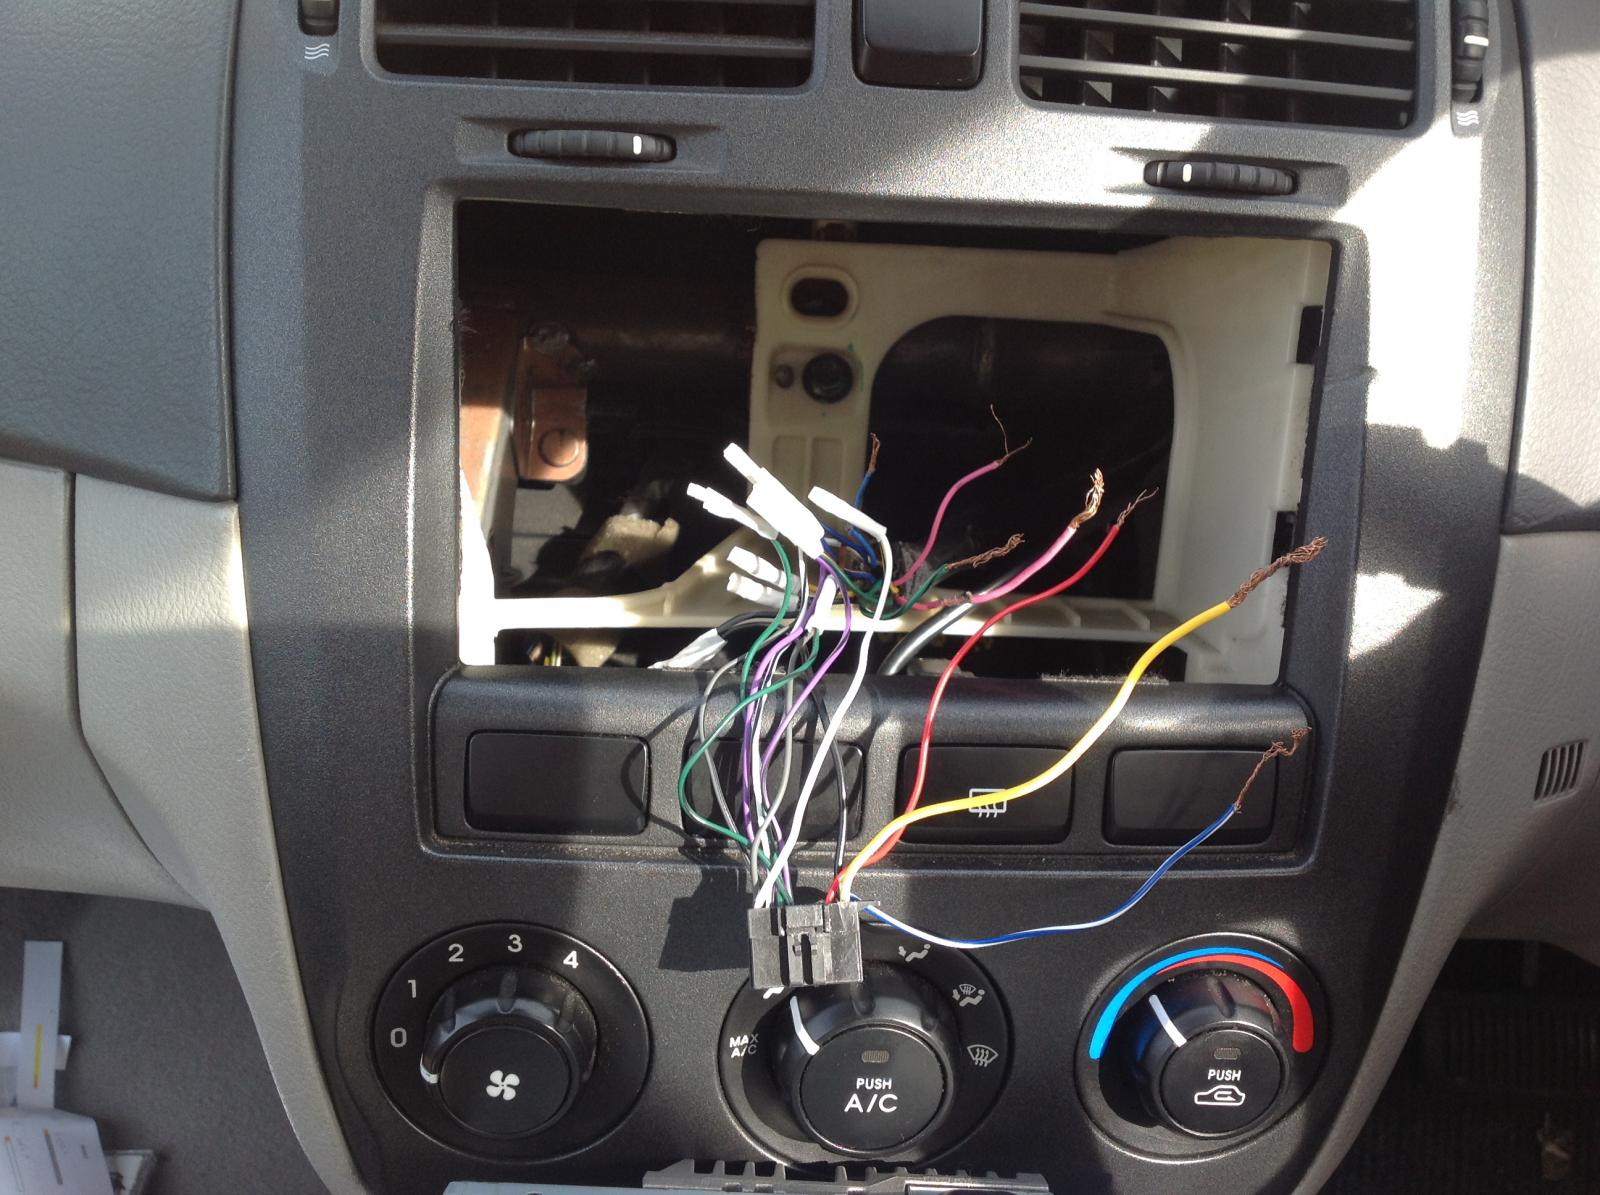 Kia Soul 2010 Radio Wiring Diagram On Kia Soul Radio Wiring Diagram